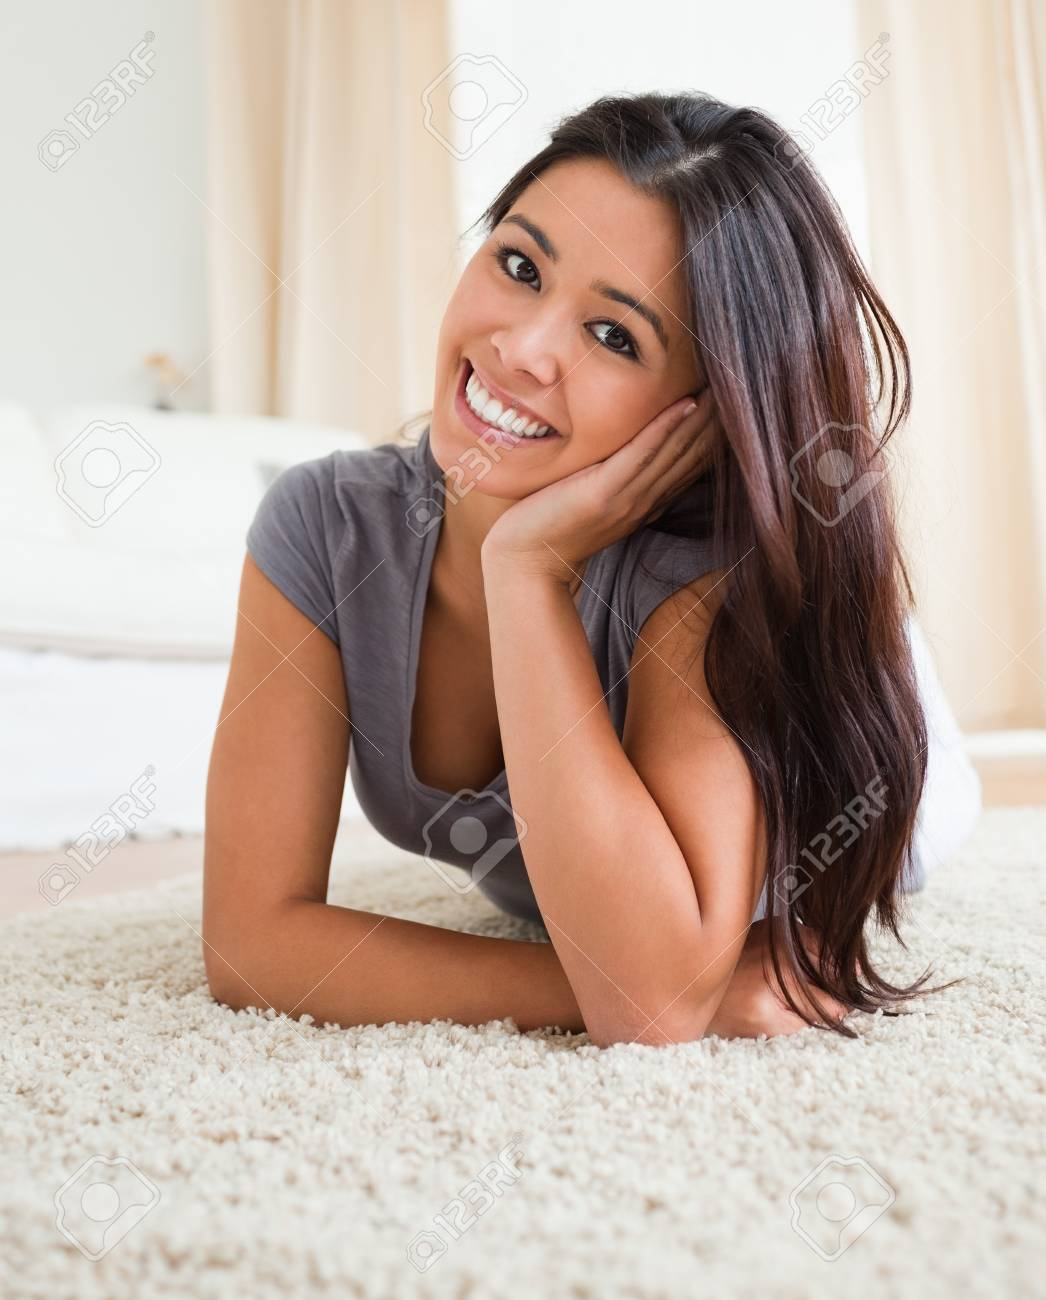 charming woman lying on a carpet in livingroom Stock Photo - 11191900